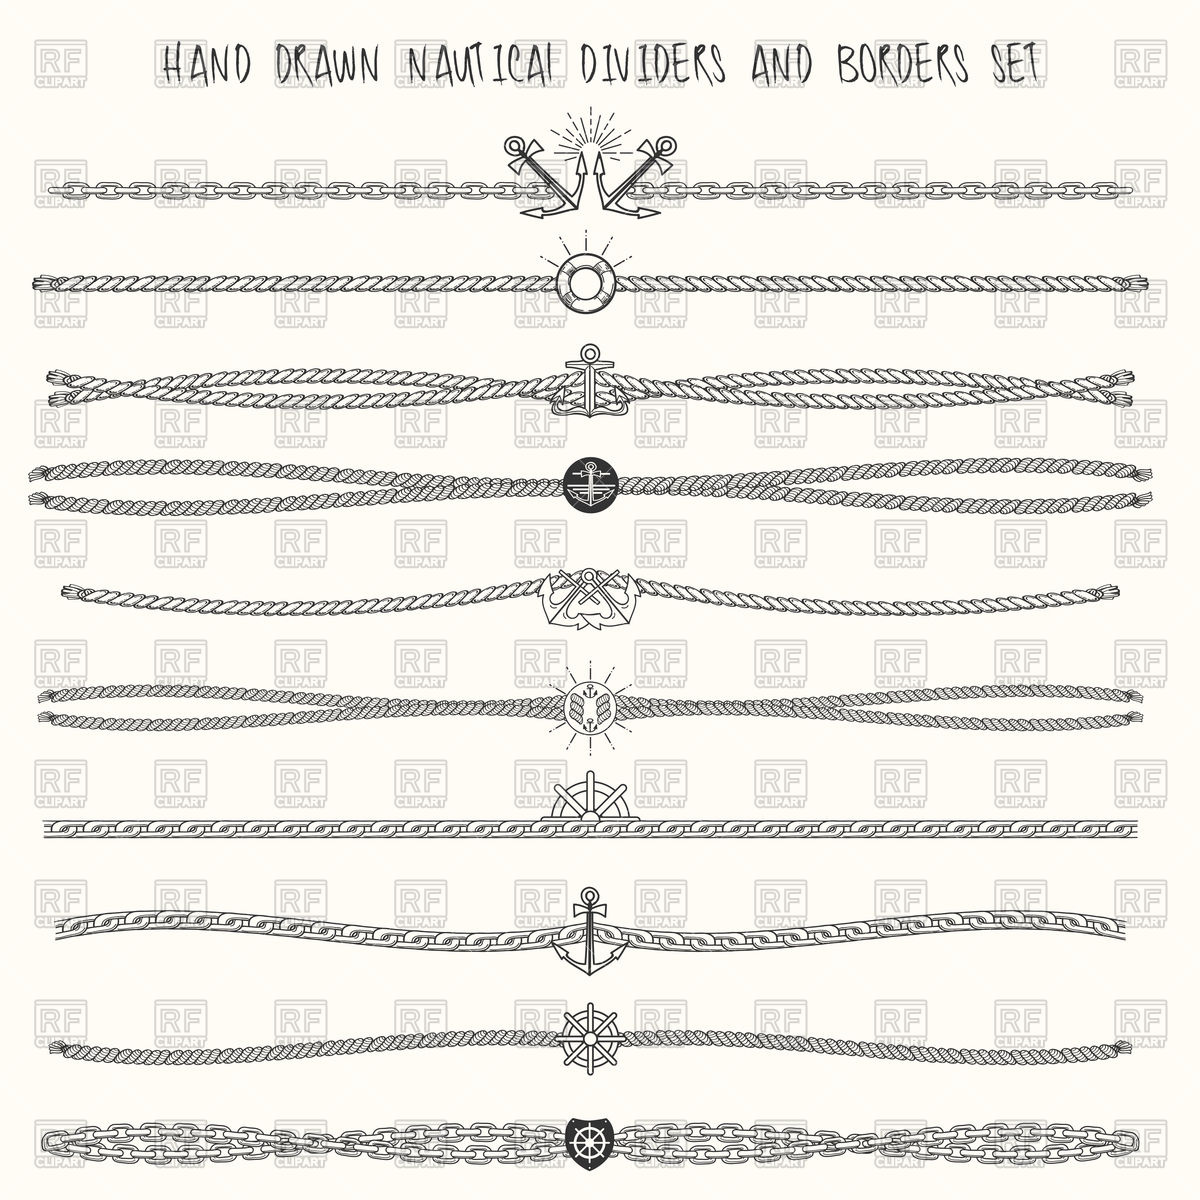 Set of nautical ropes and chains Vector Image #84077.